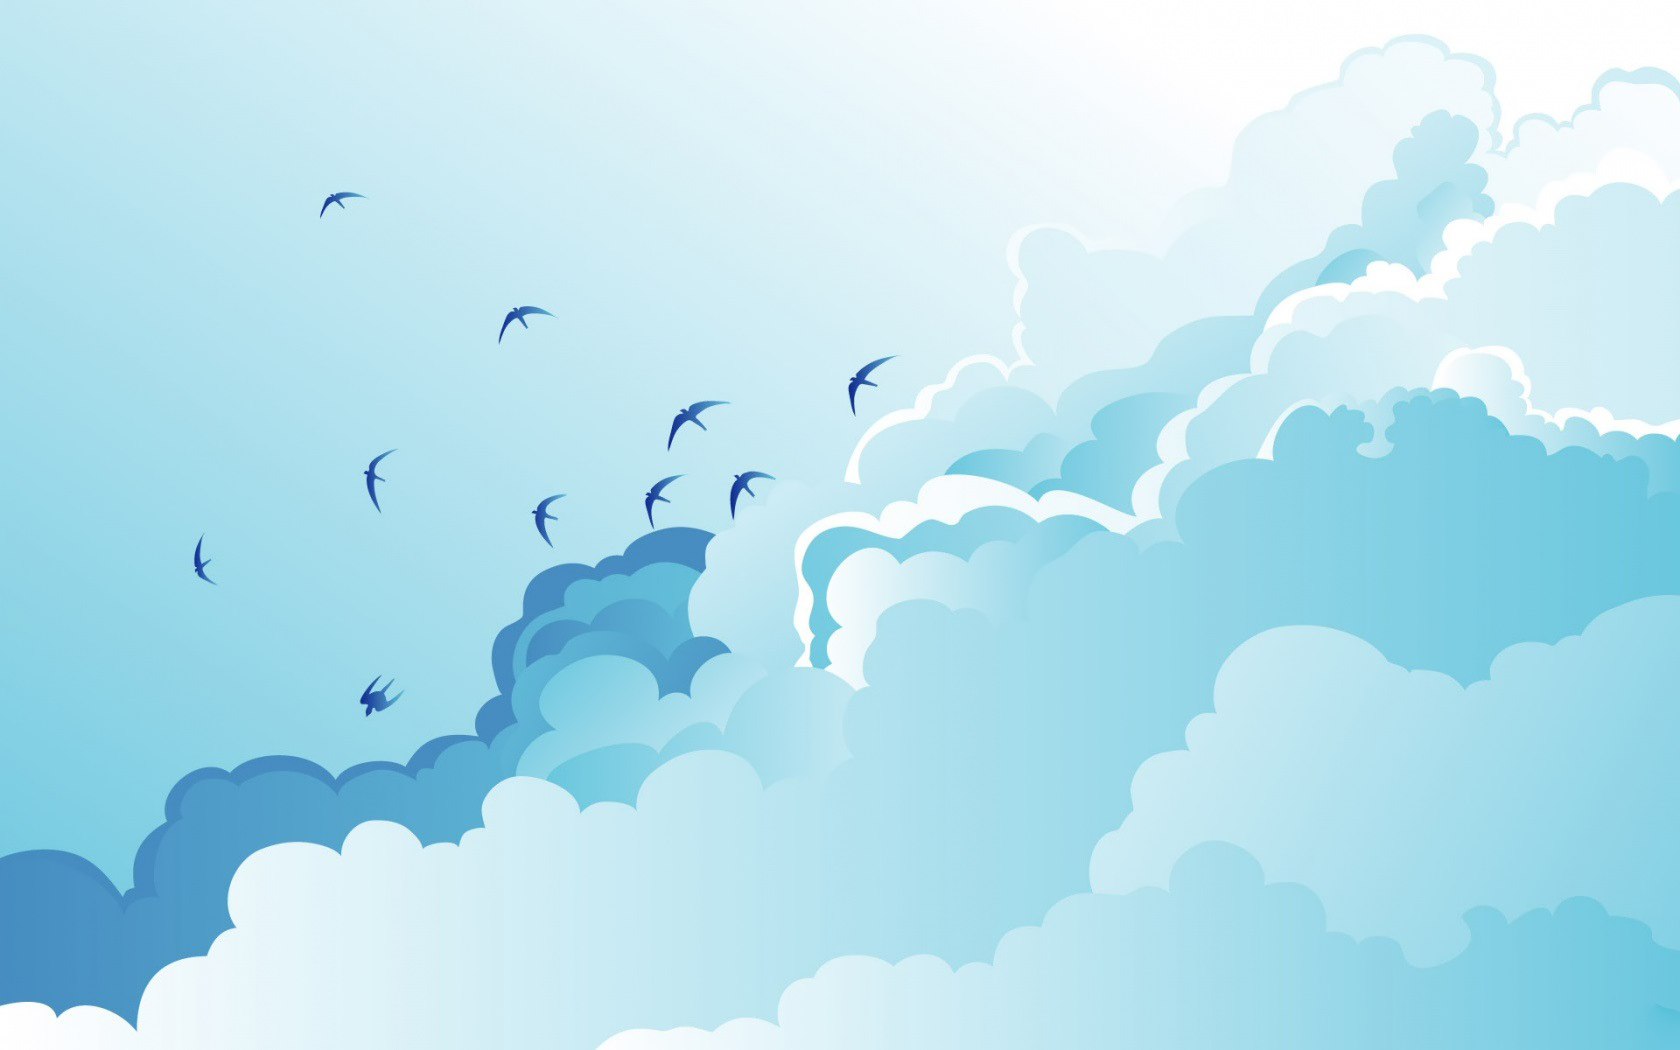 Background clipart blue.